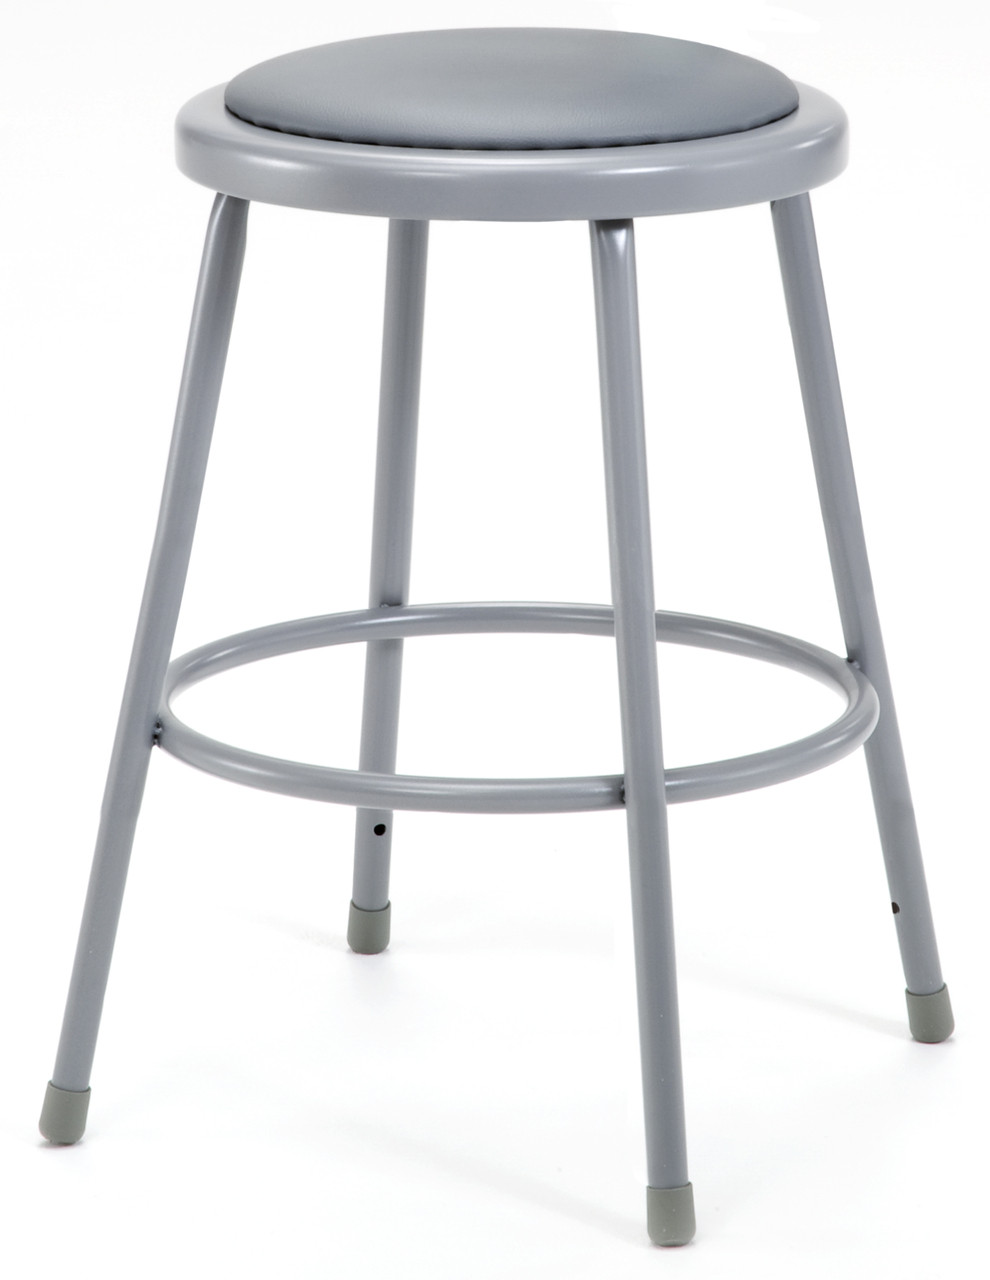 Gray Round Science Lab Stool With Padded Seat And Optional